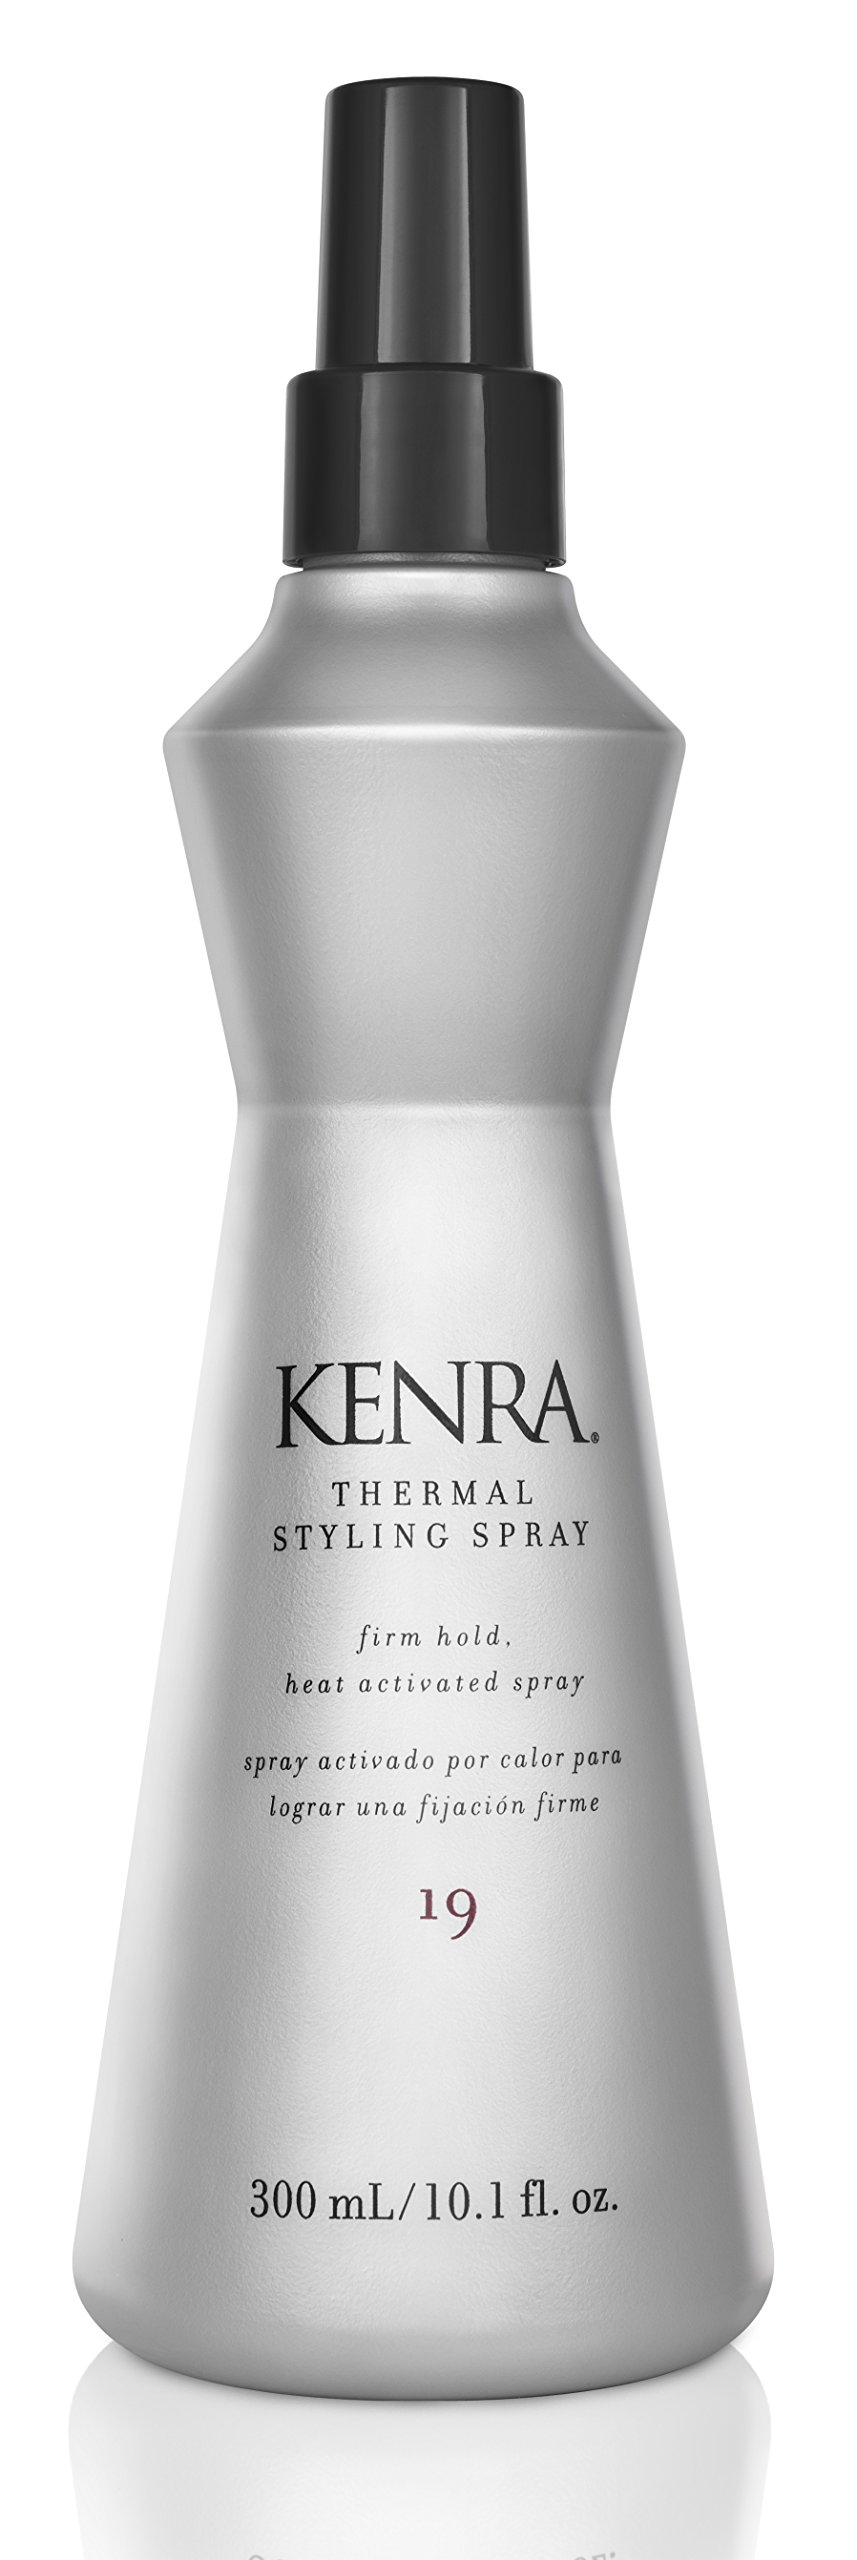 Kenra Thermal Styling Spray #19, 55% VOC, 10.1-Ounce by Kenra